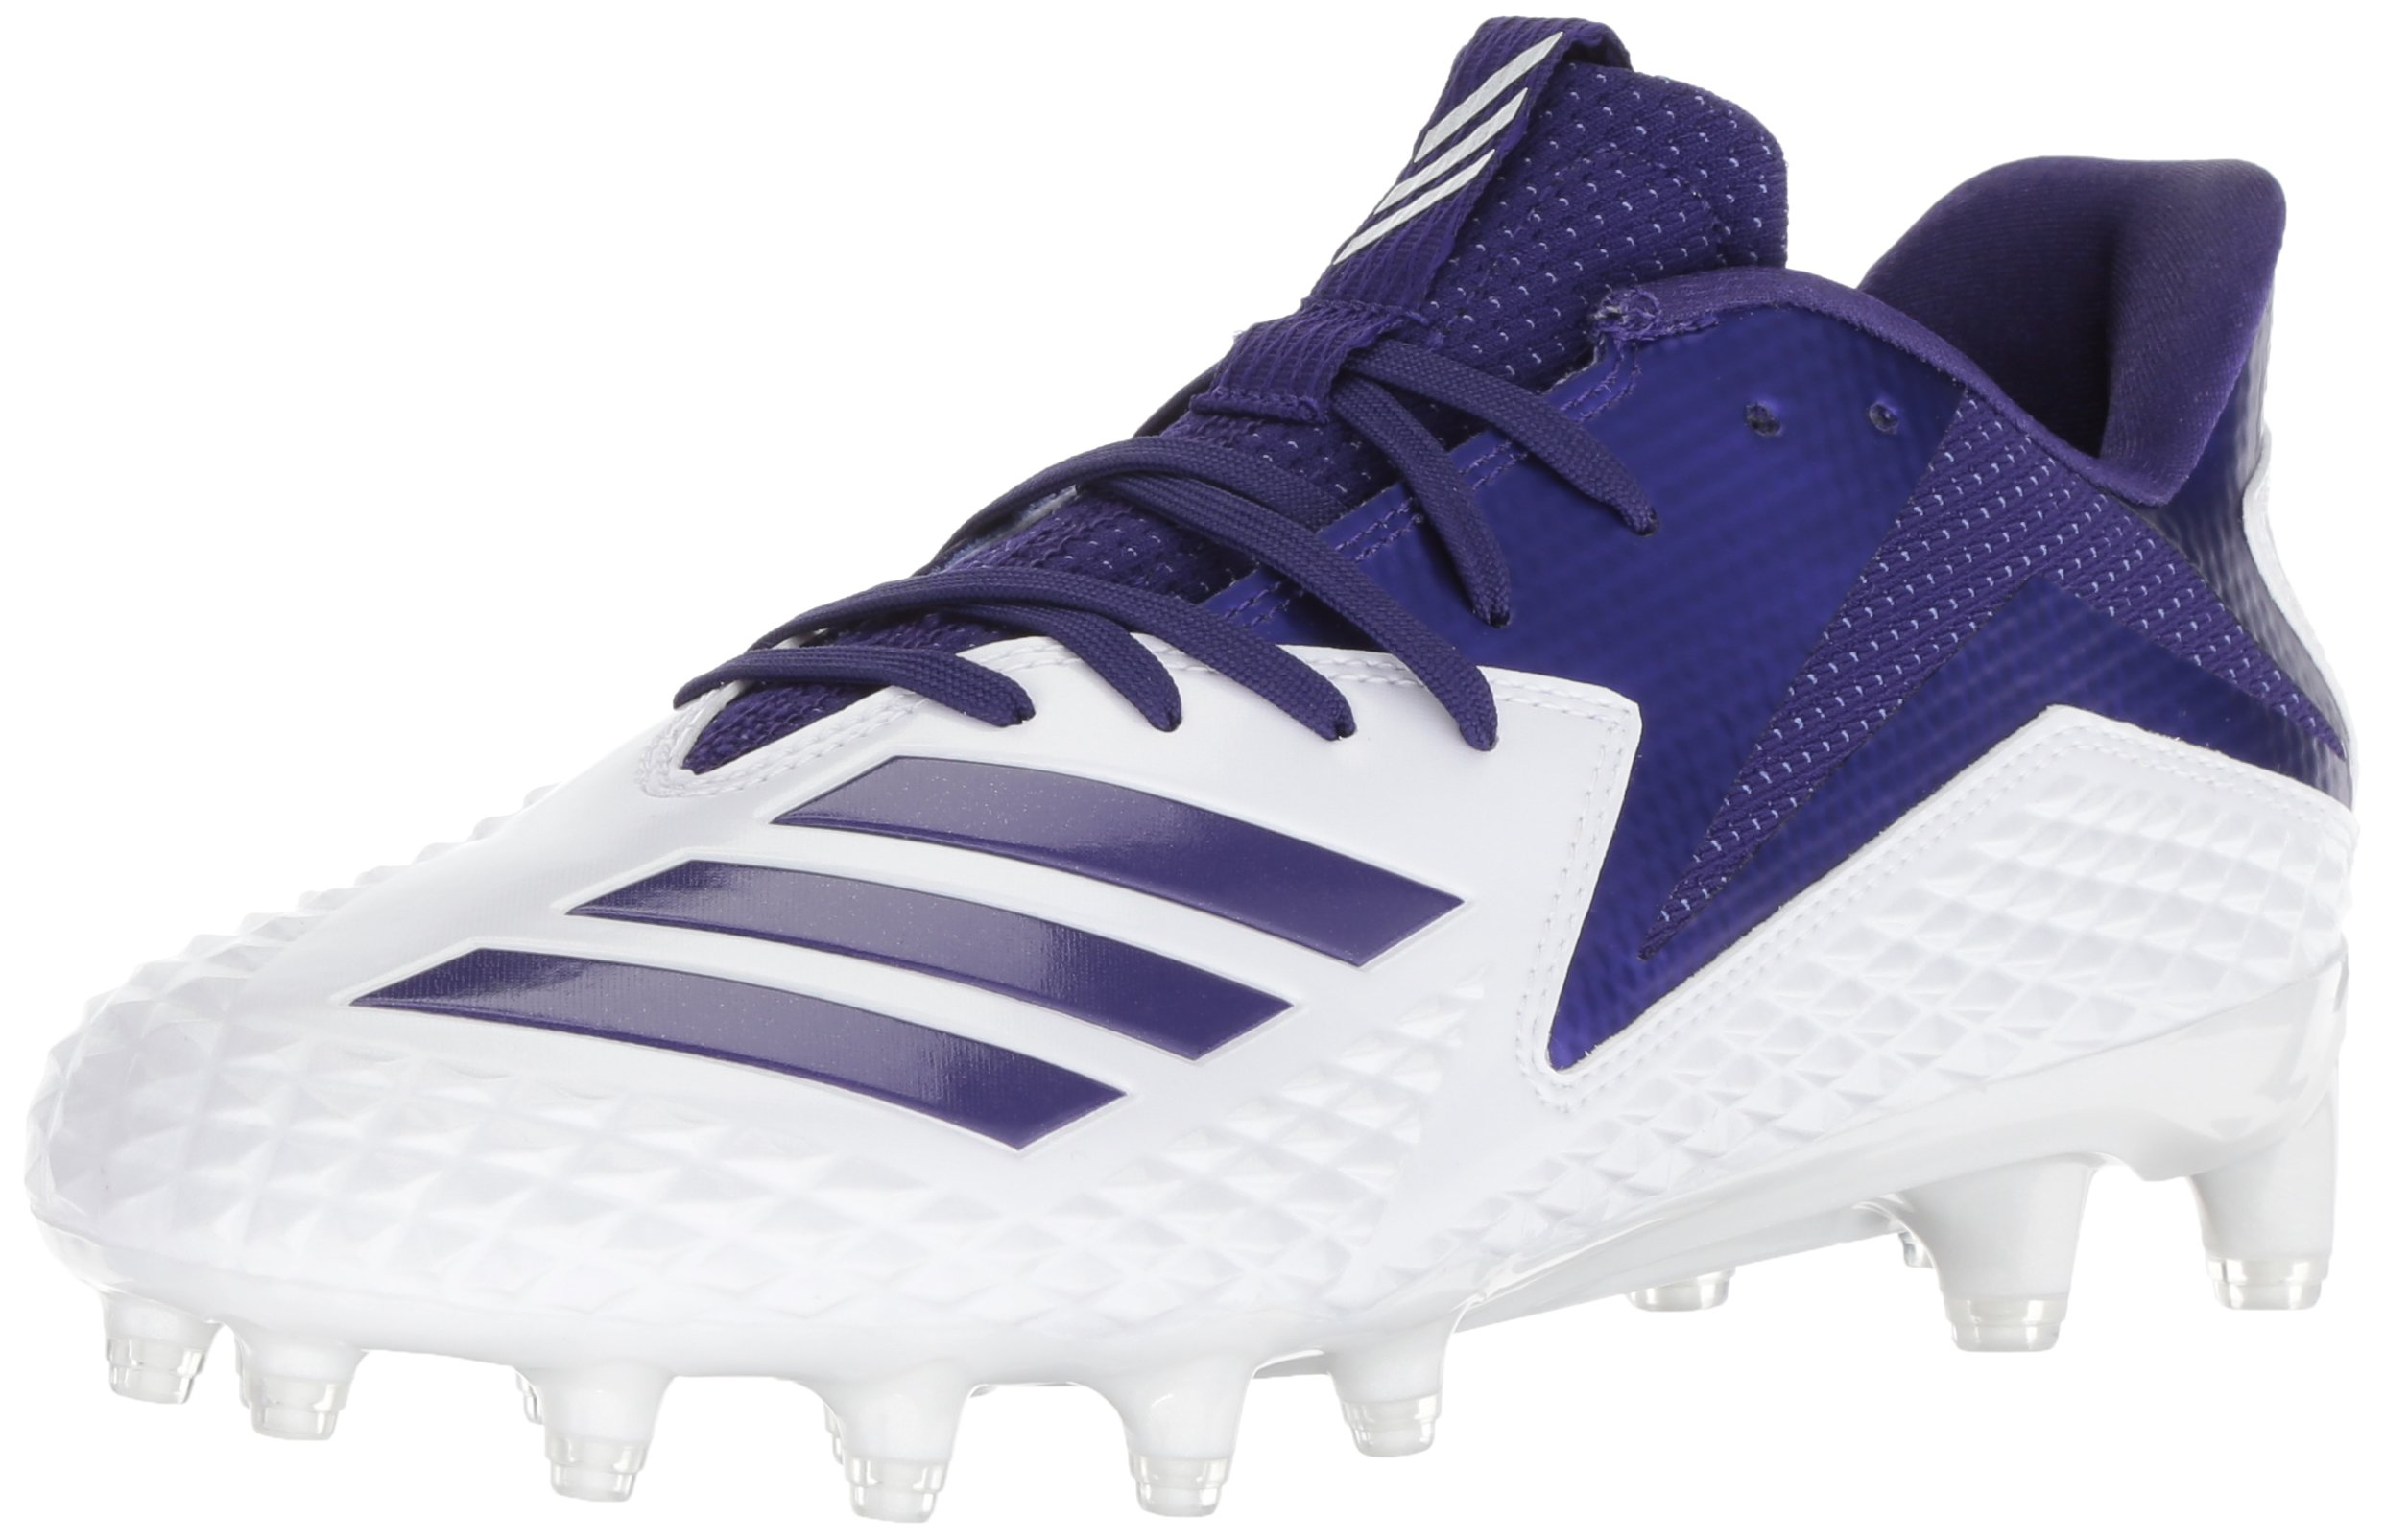 adidas Men's Freak X Carbon Mid Football Shoe, White/Collegiate Purple/Collegiate Purple, 11.5 M US